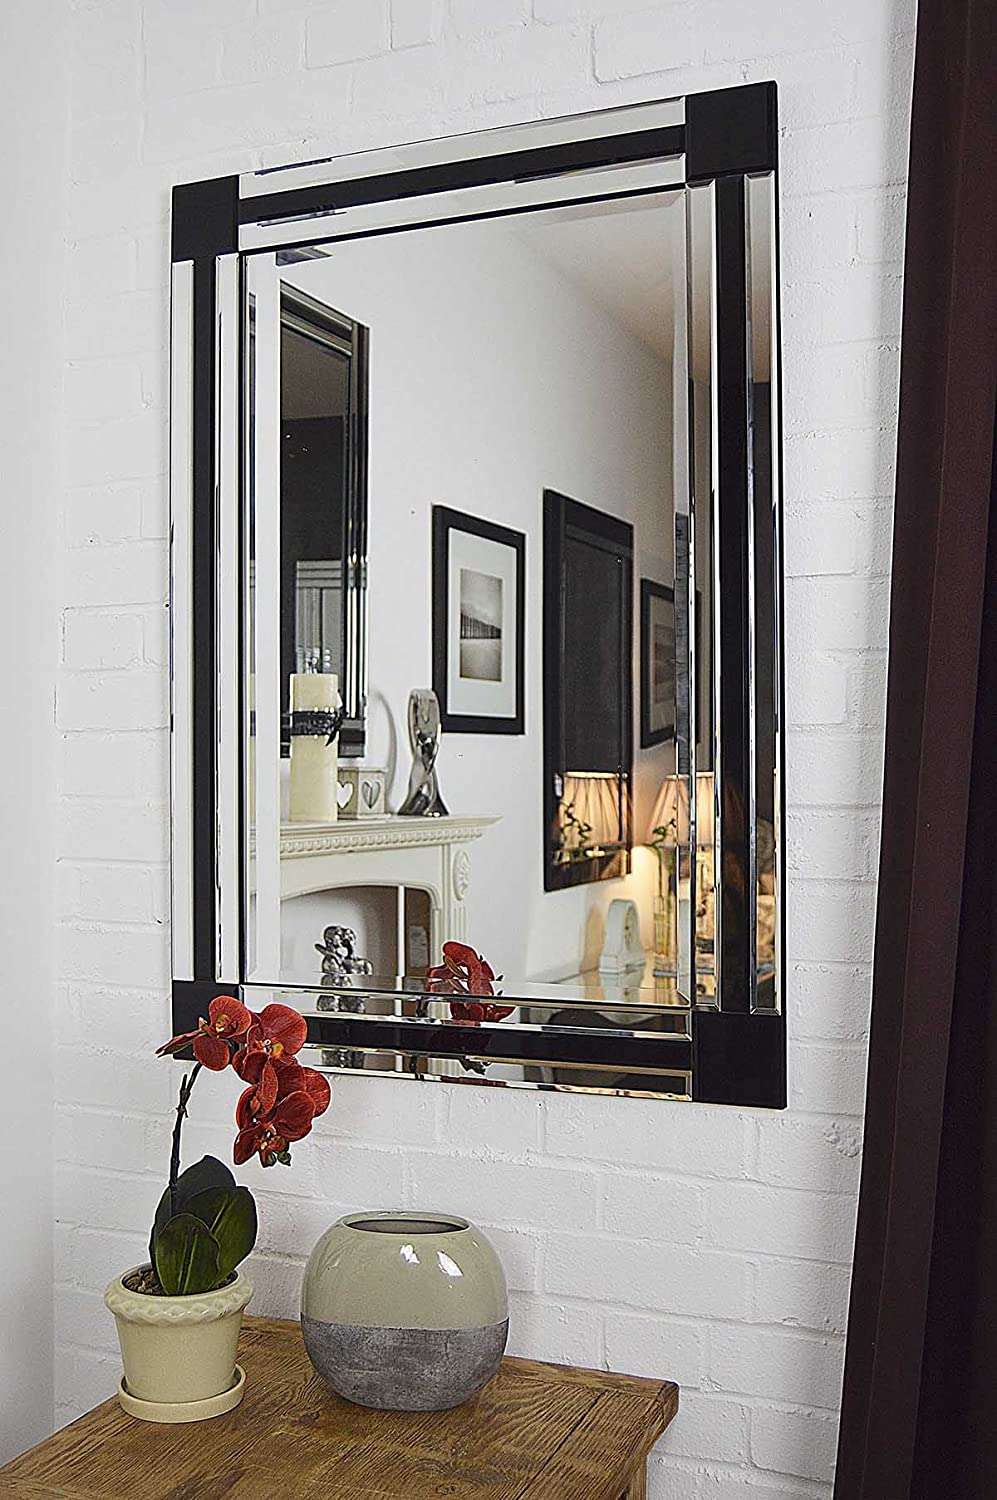 Large Modern Black And Silver Bevelled Venetian Mirror 3Ft3 X 2Ft3 70cmx100cm Amazoncouk Kitchen Home